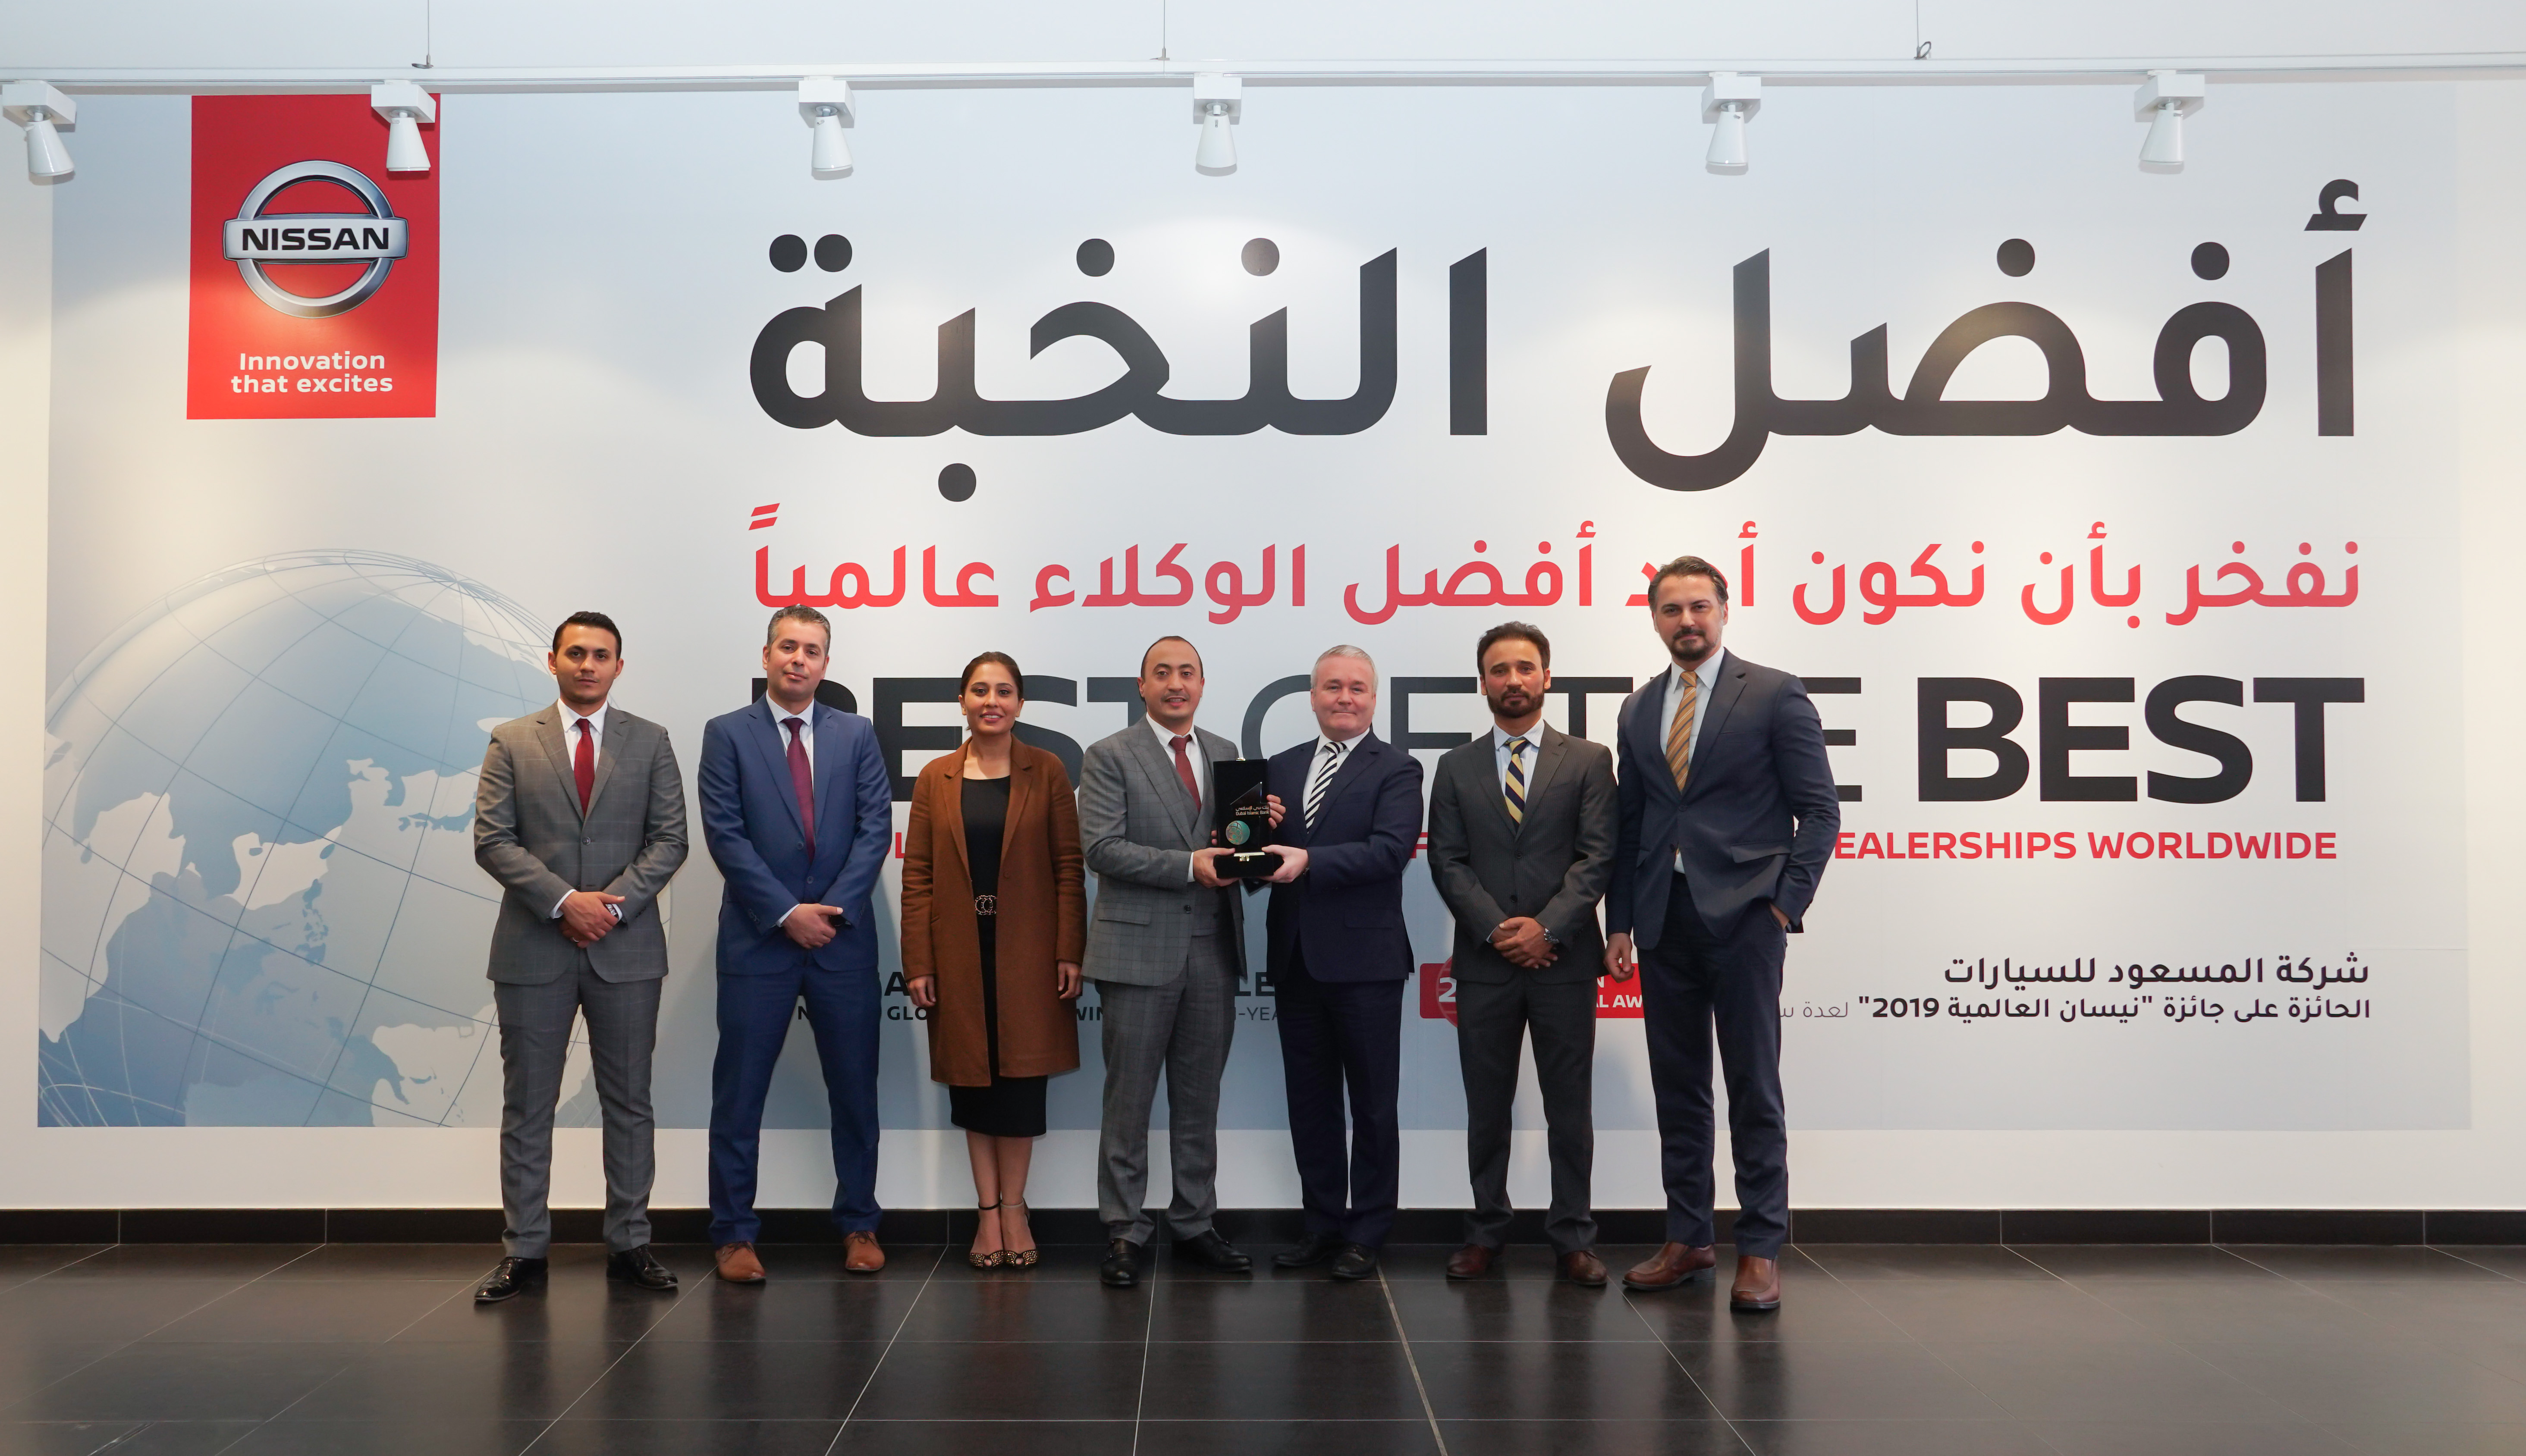 Al Masaood Automobiles First Ever Car Dealer to be recognized by Dubai Islamic Bank